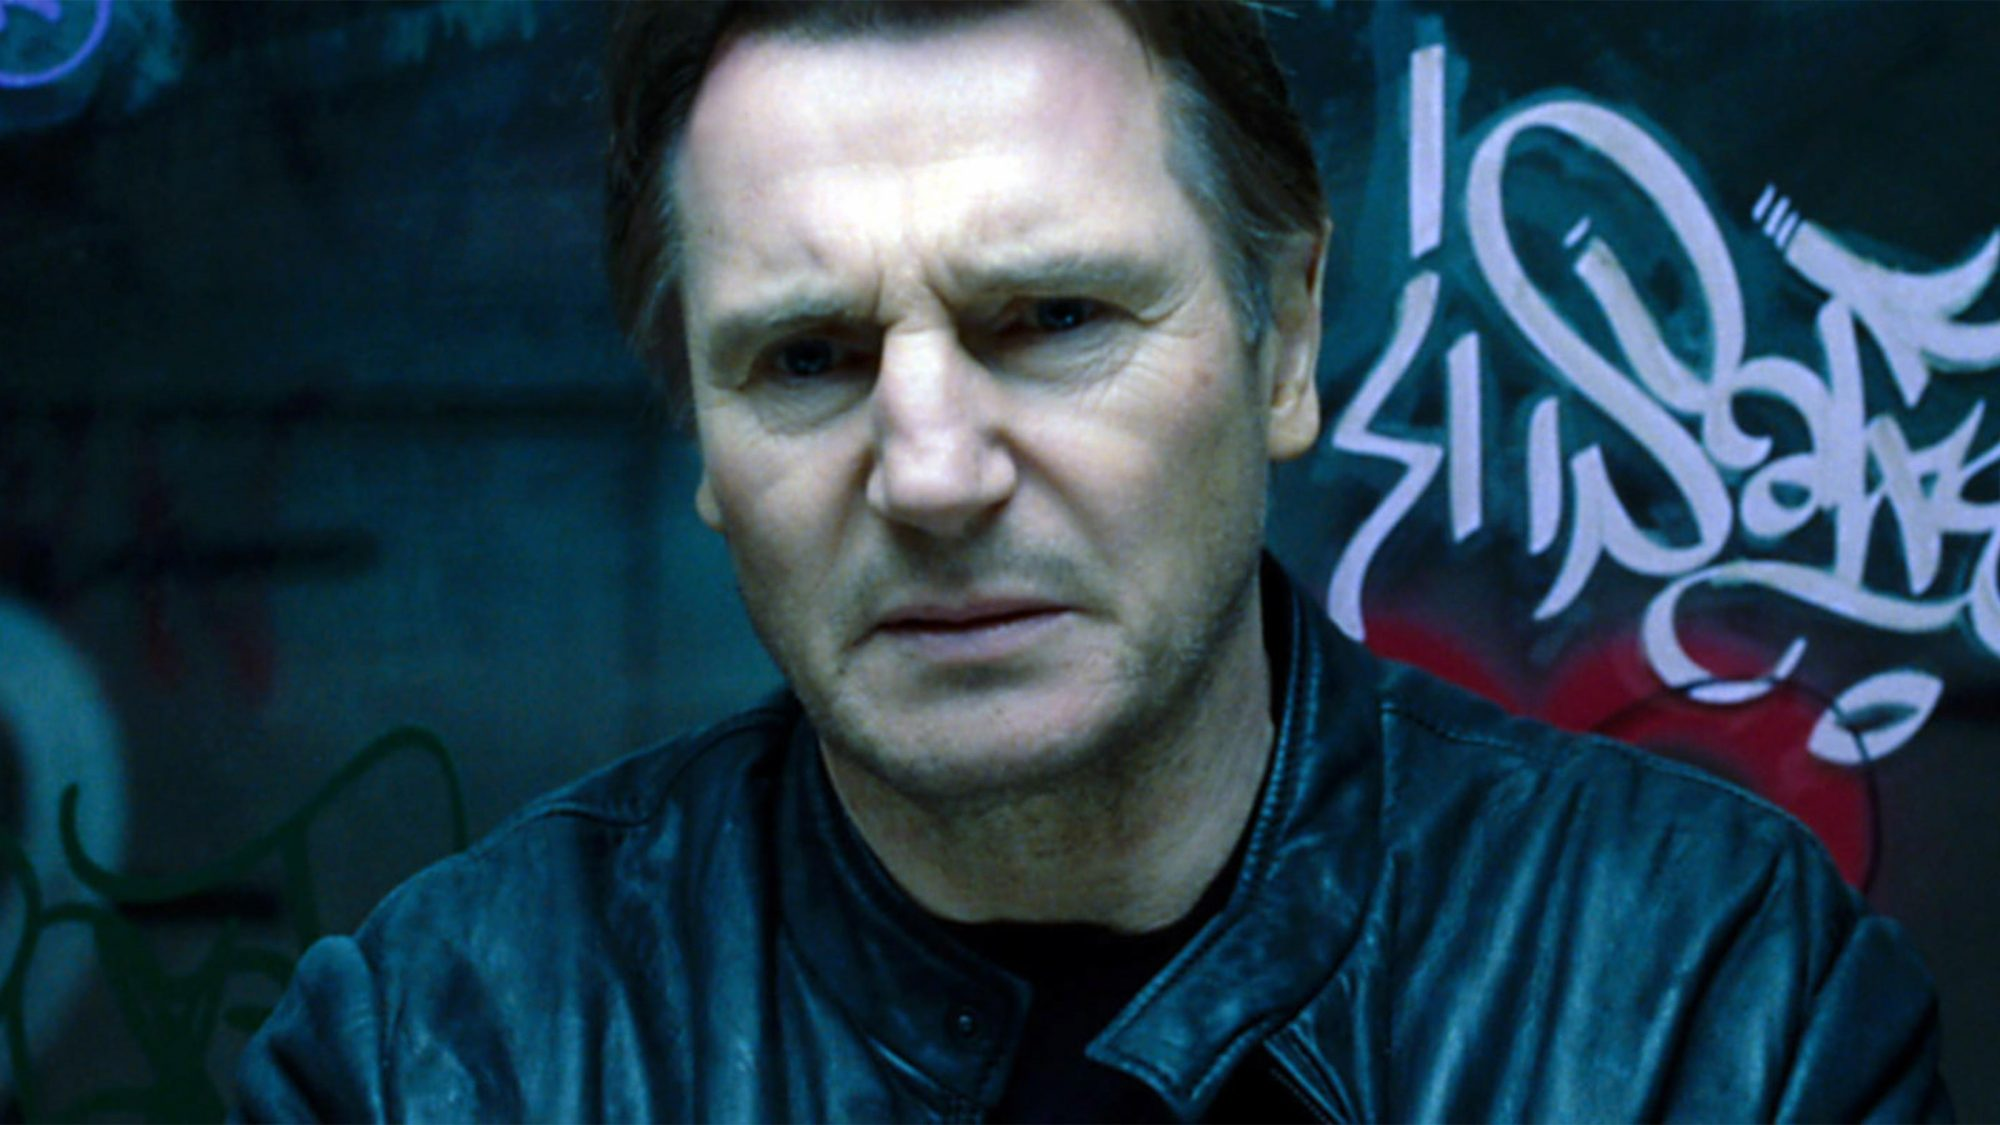 UNKNOWN, Liam Neeson, 2011. ph: Jay Maidment/©Warner Bros./Courtesy Everett Collection